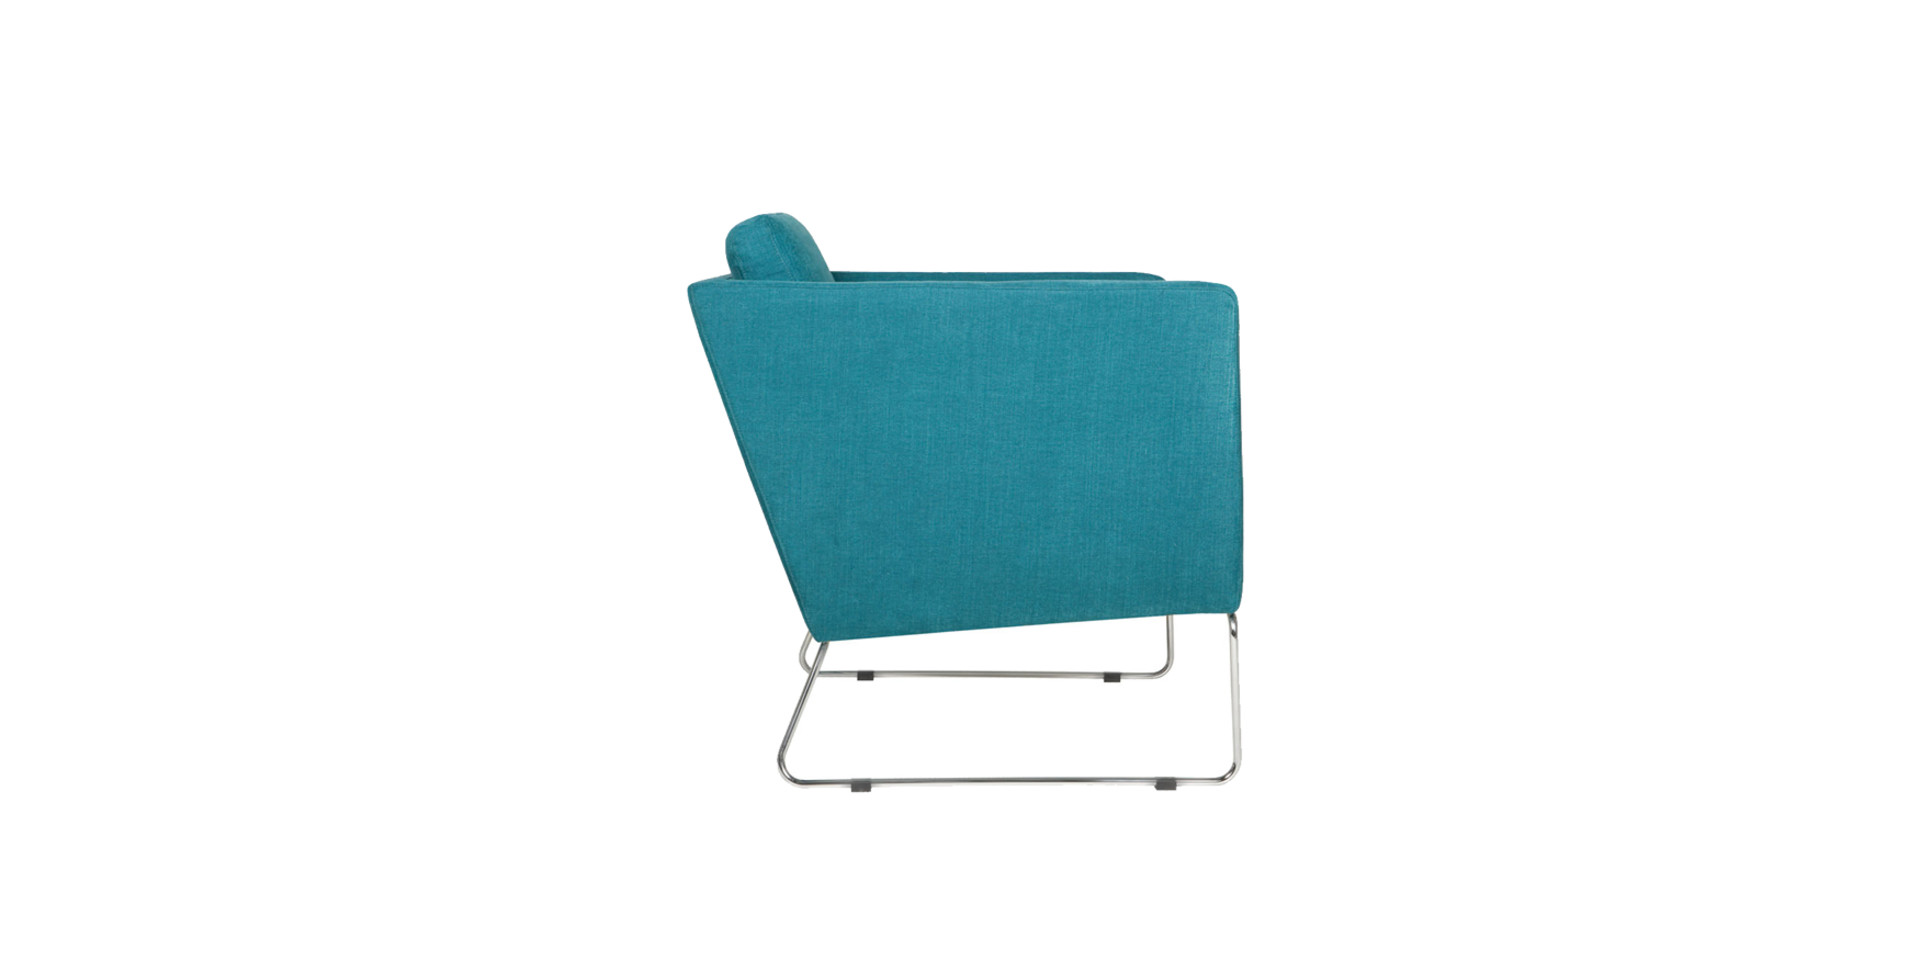 sits-clark-fauteuil-armchair_caleido1551_turquoise_3